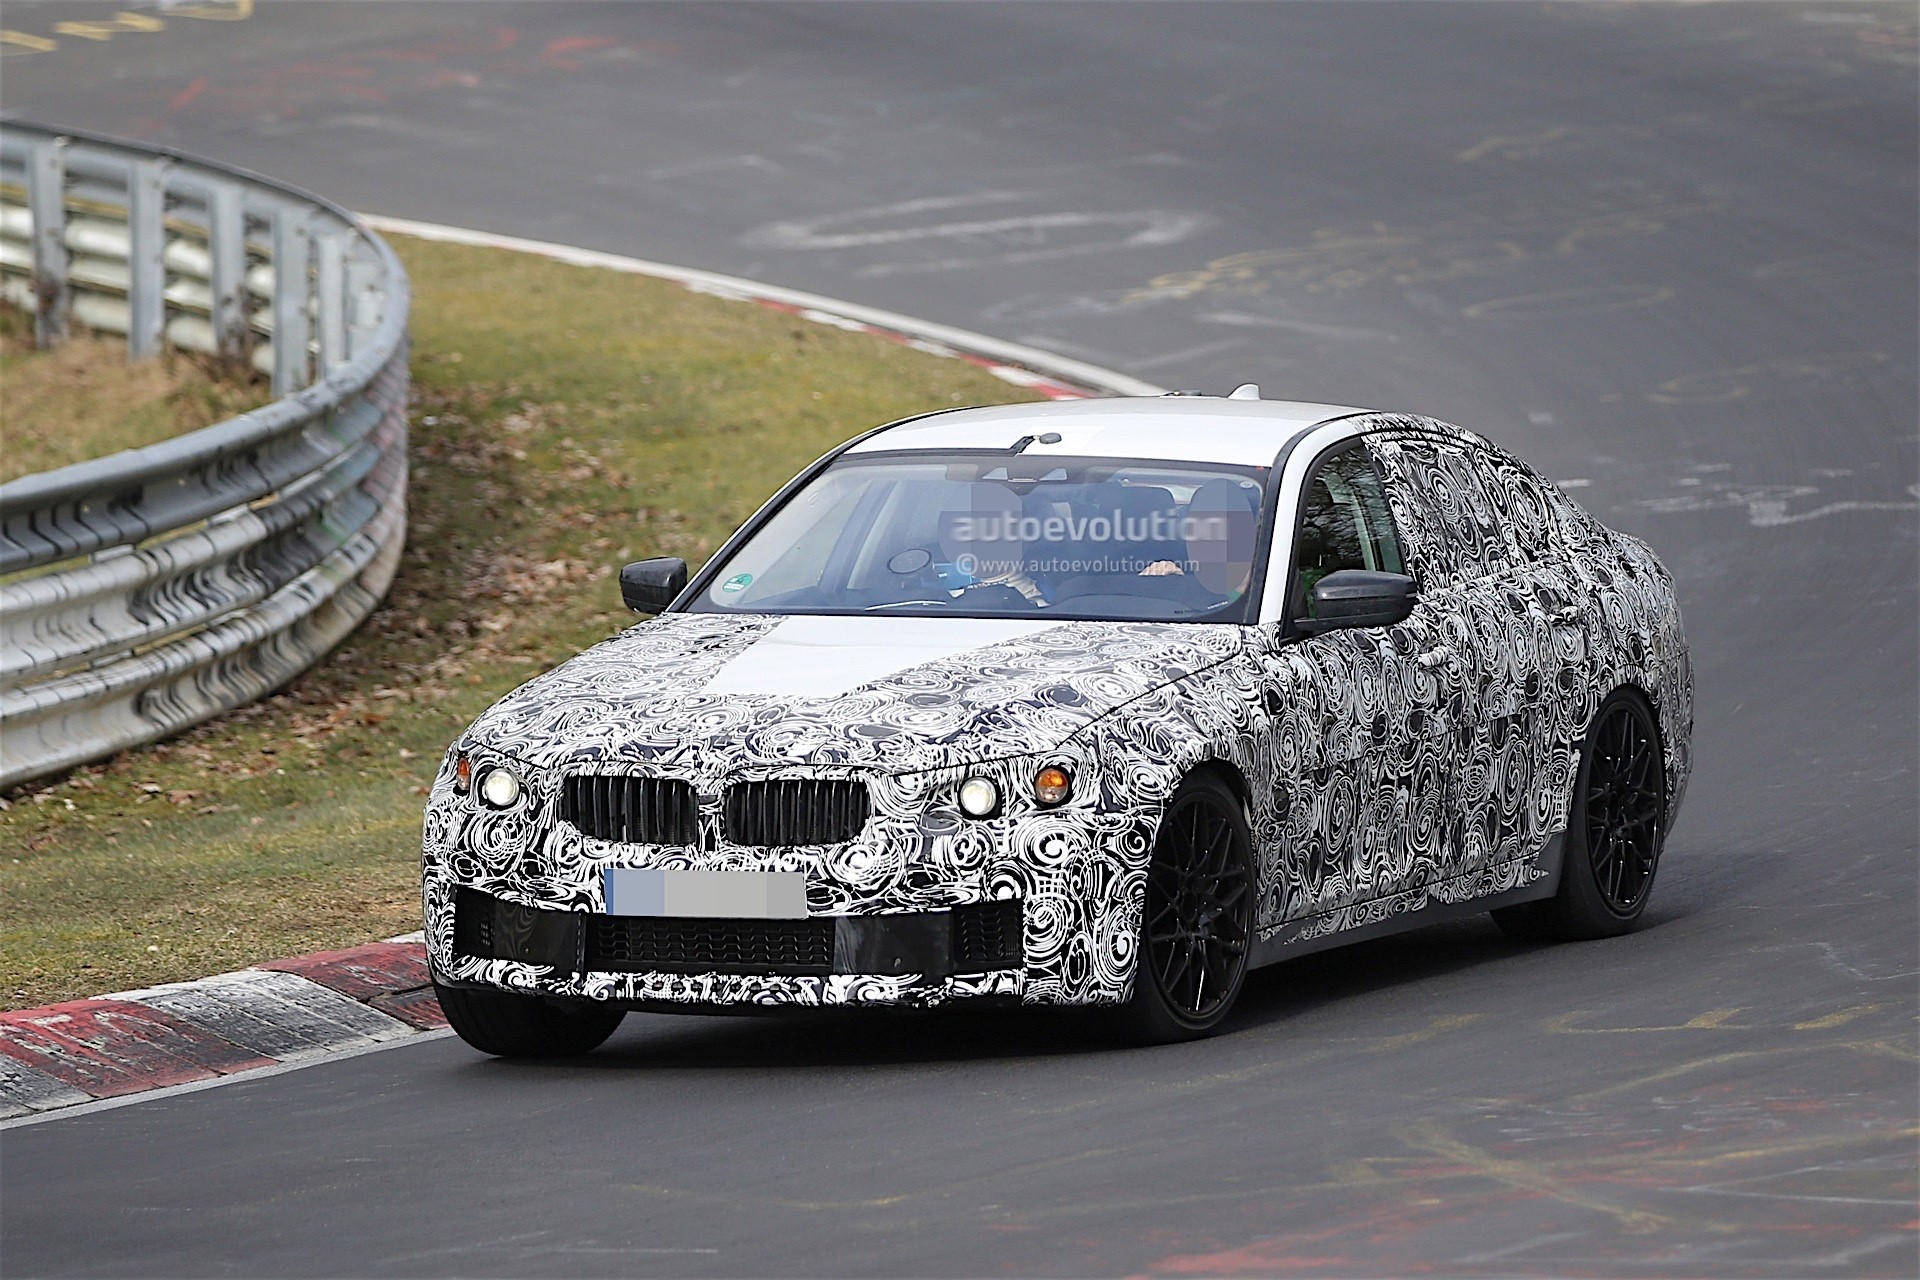 2017 Bmw M5 Prototype Still Testing On The Nurburgring